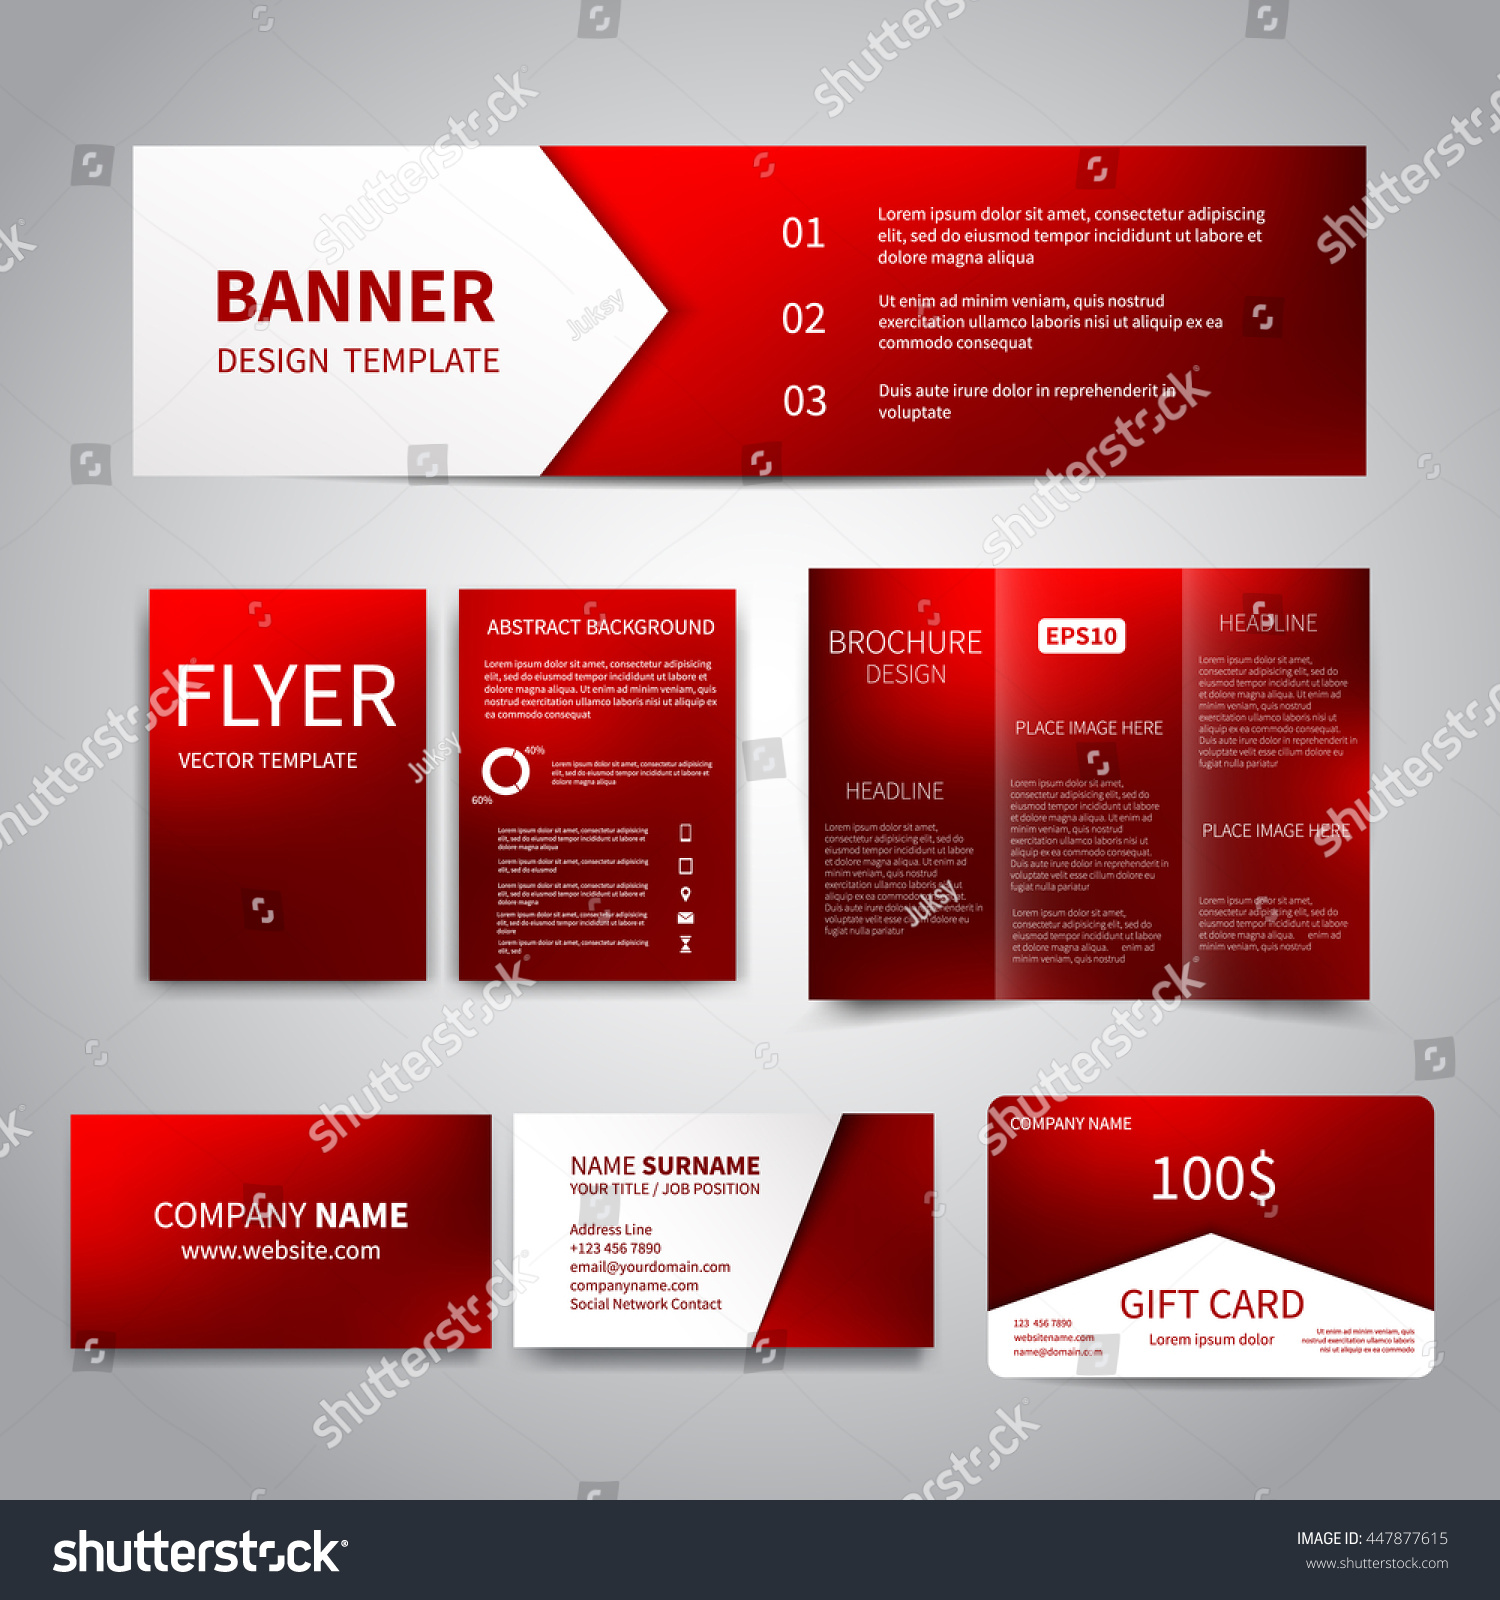 banner flyers brochure business cards gift stock vector 447877615 banner flyers brochure business cards gift card design templates set red